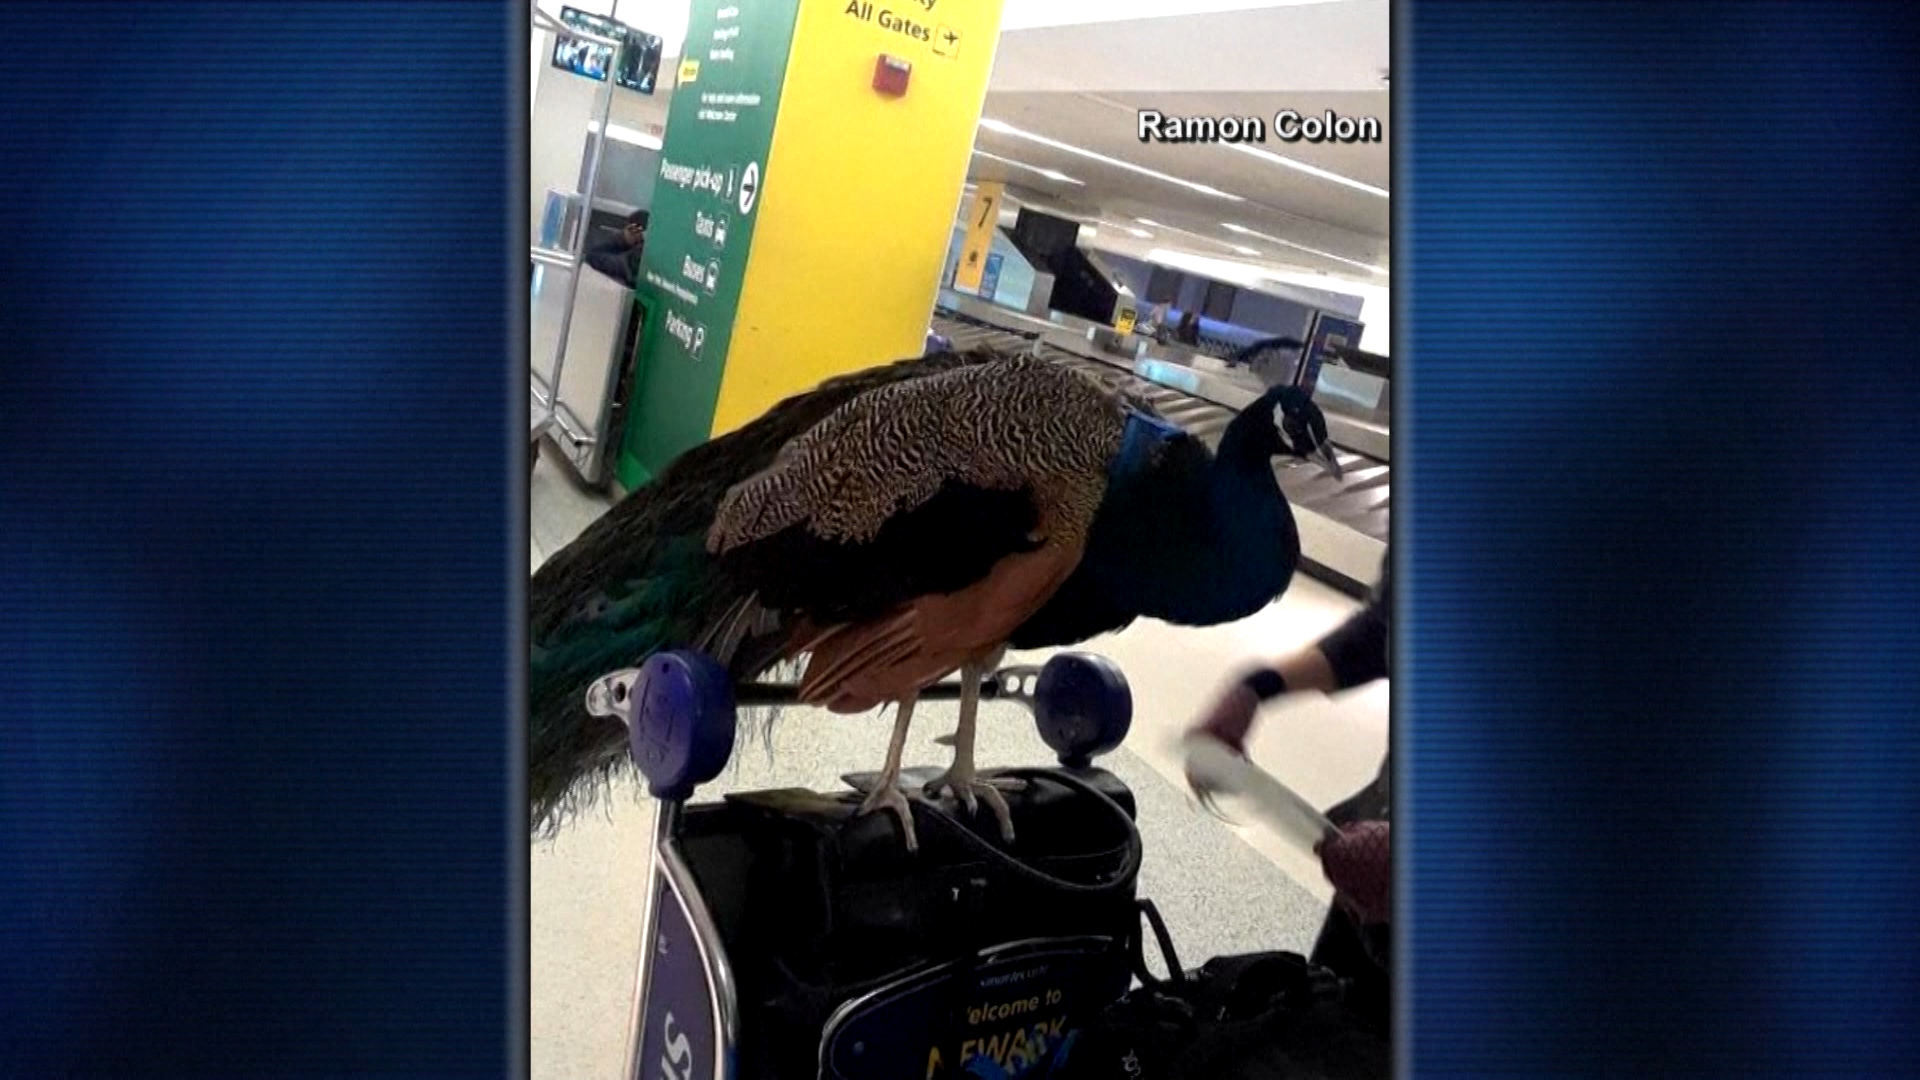 United Airlines' Response to Dexter the Peacock Incident at Newark Airport